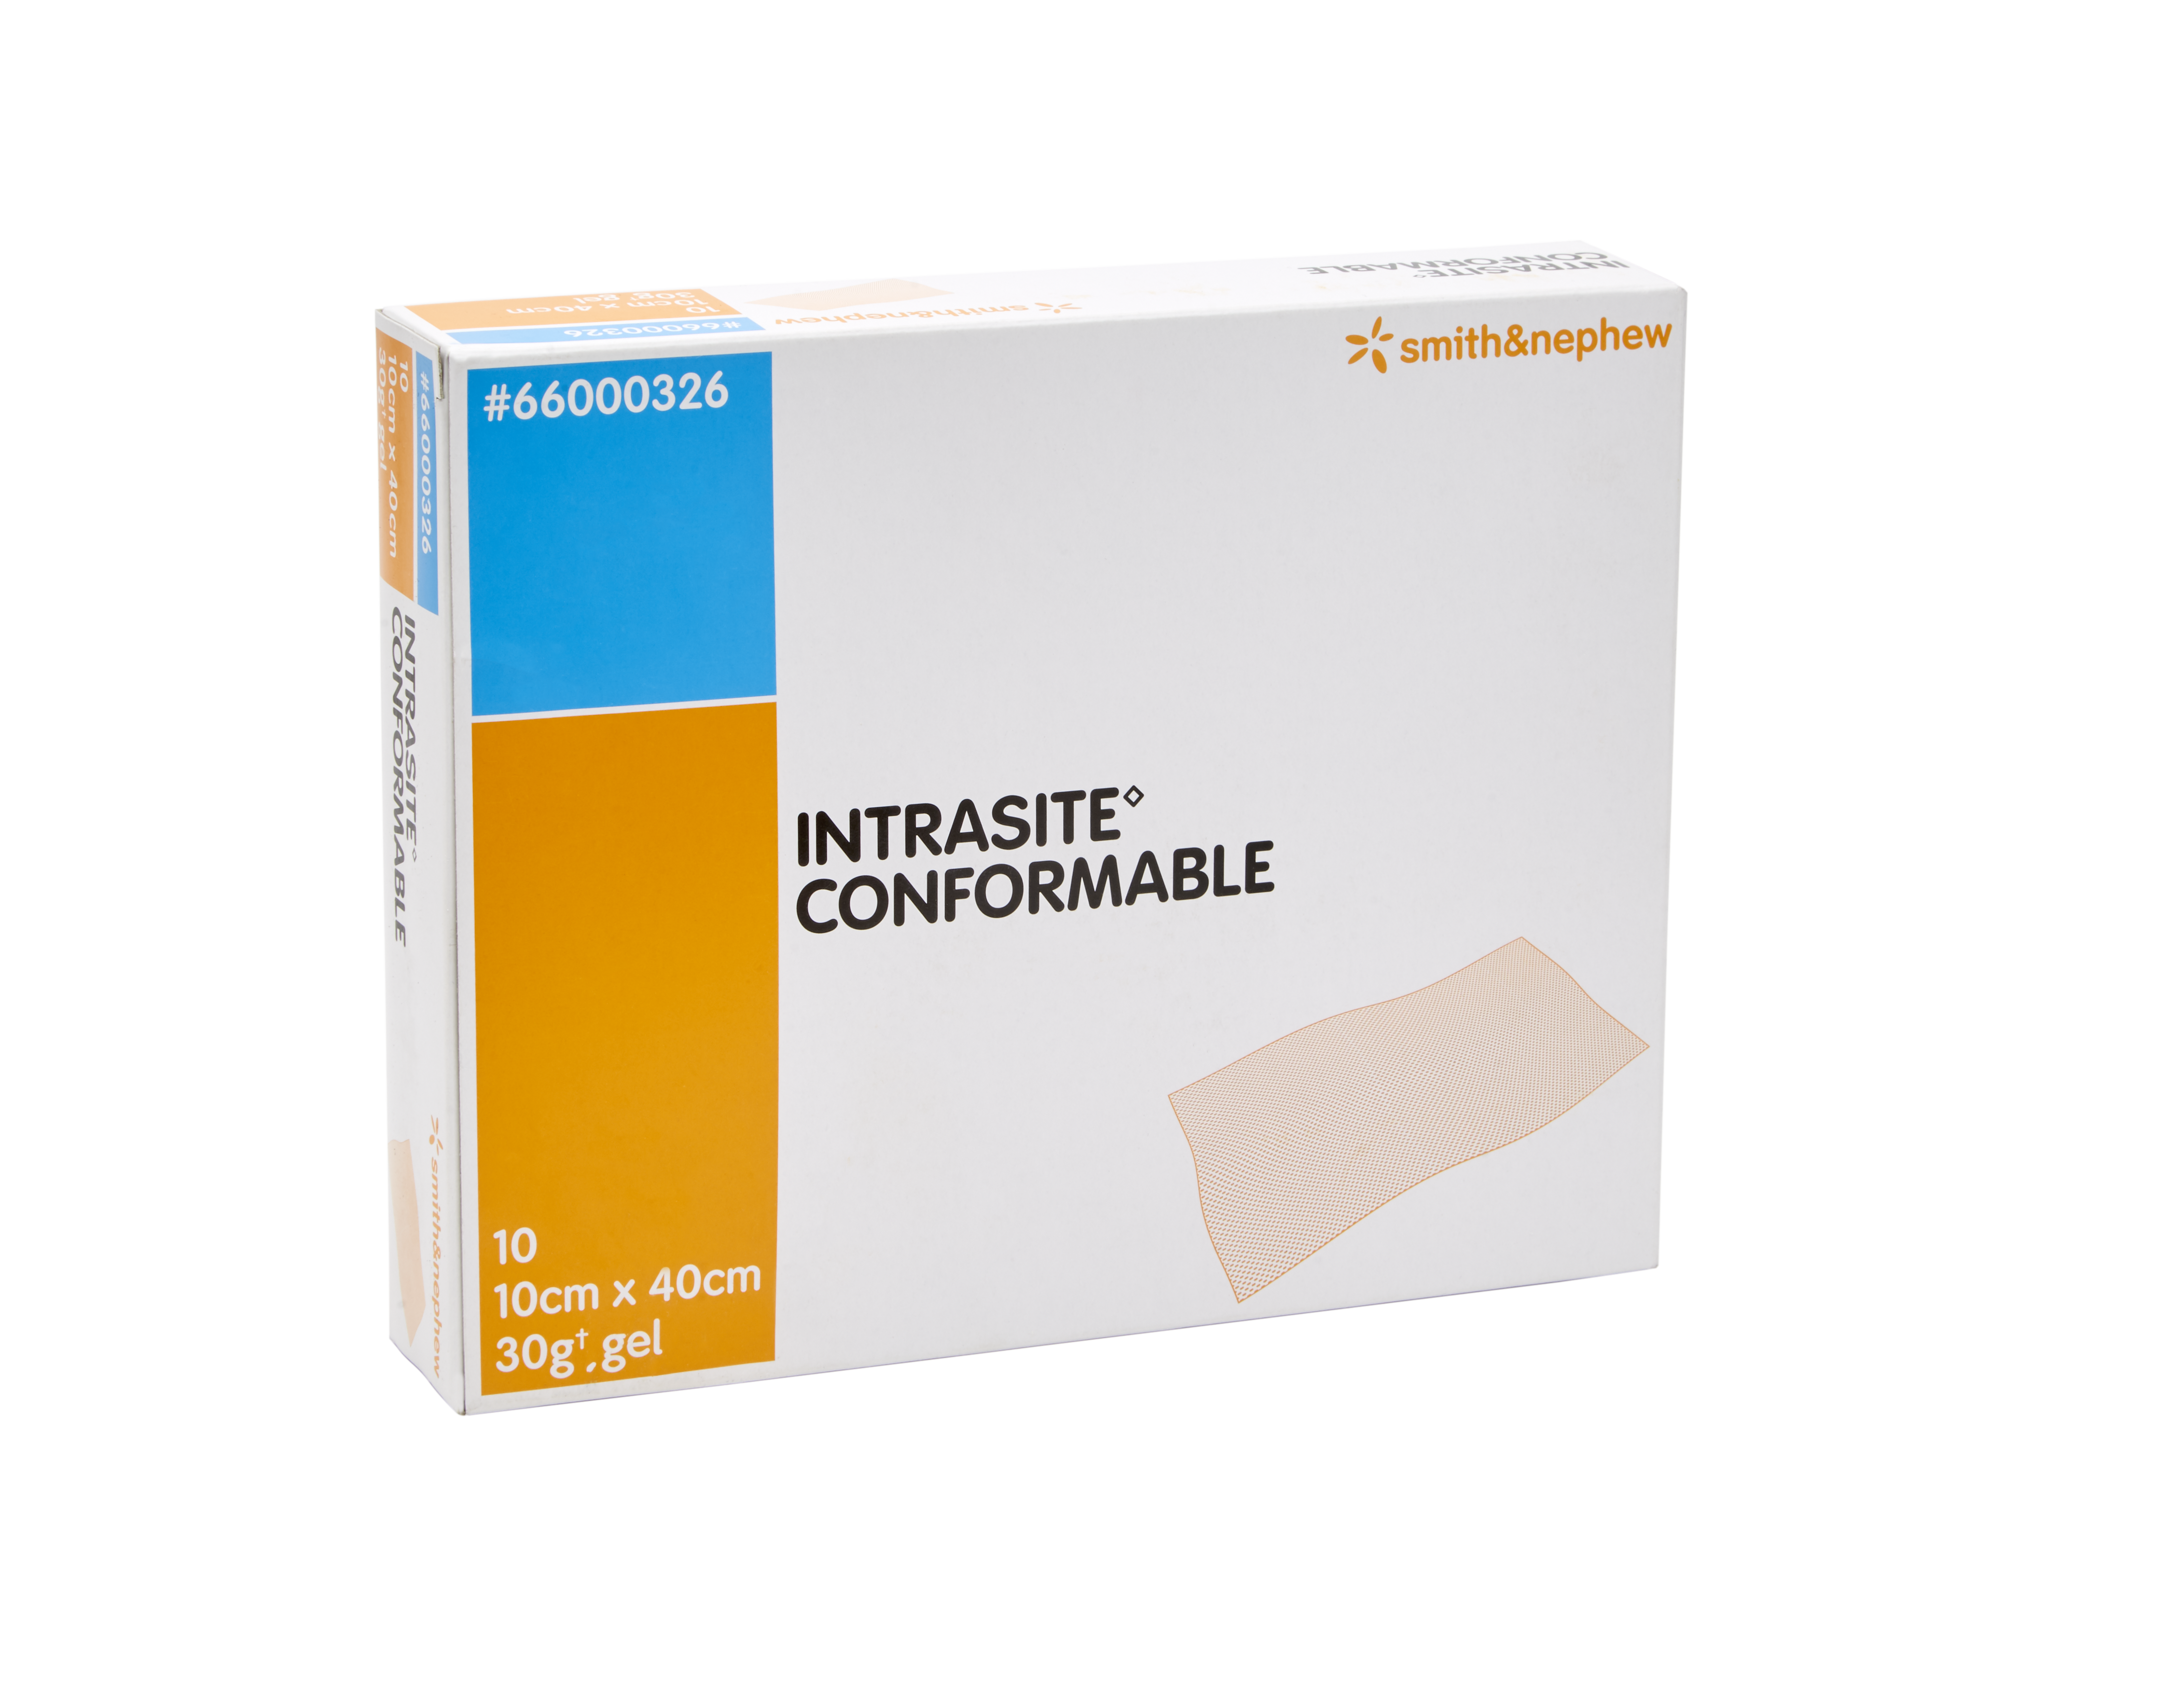 Intrasite Conformable